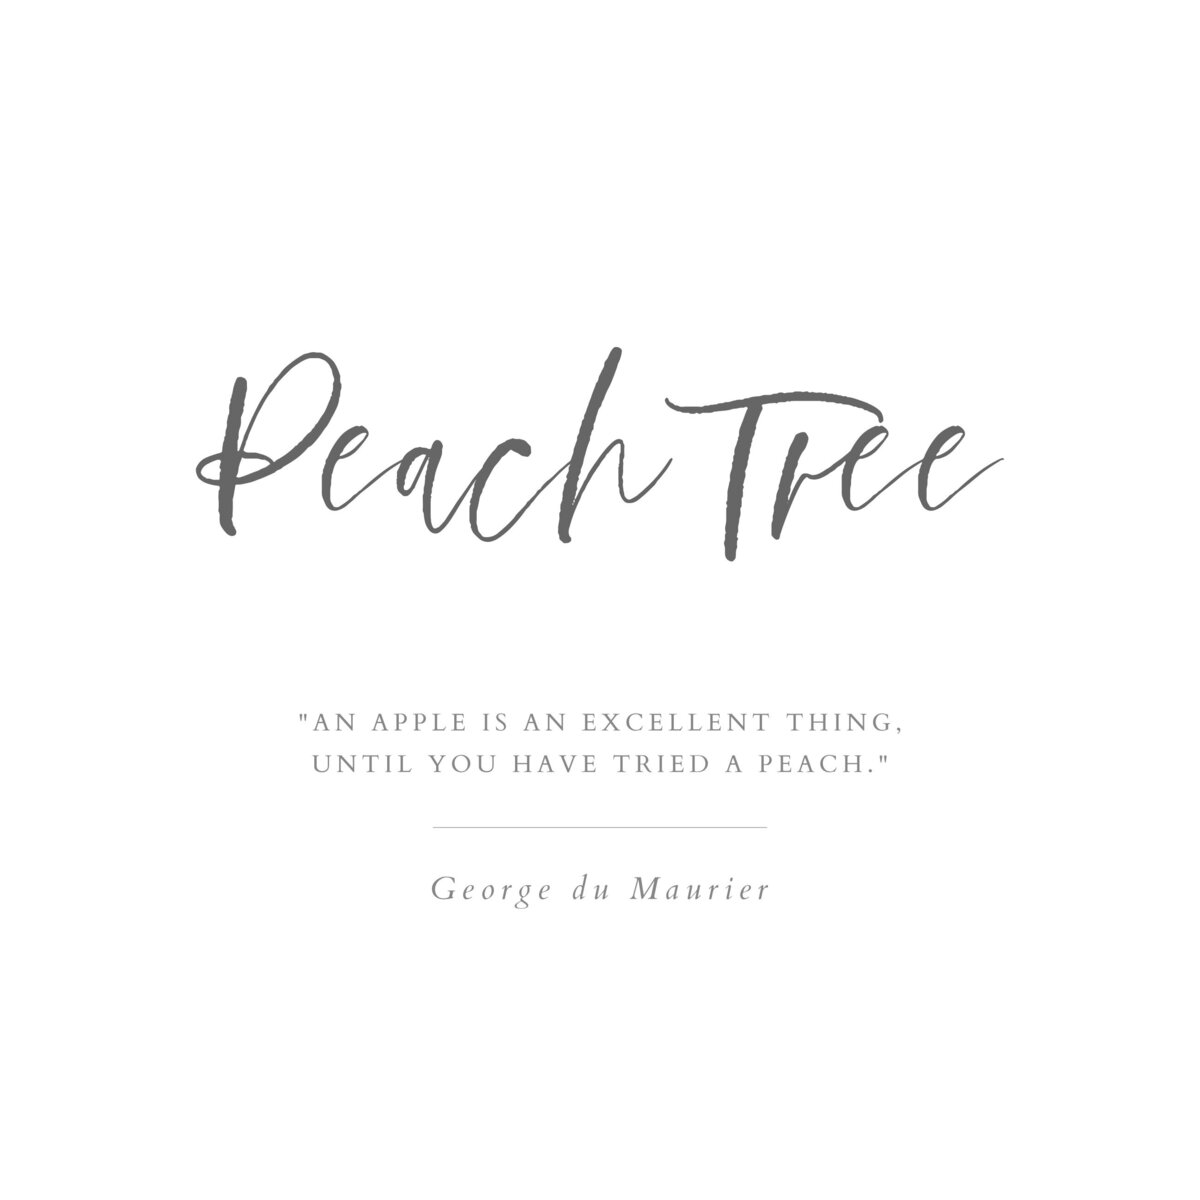 Peach Tree_Title Page